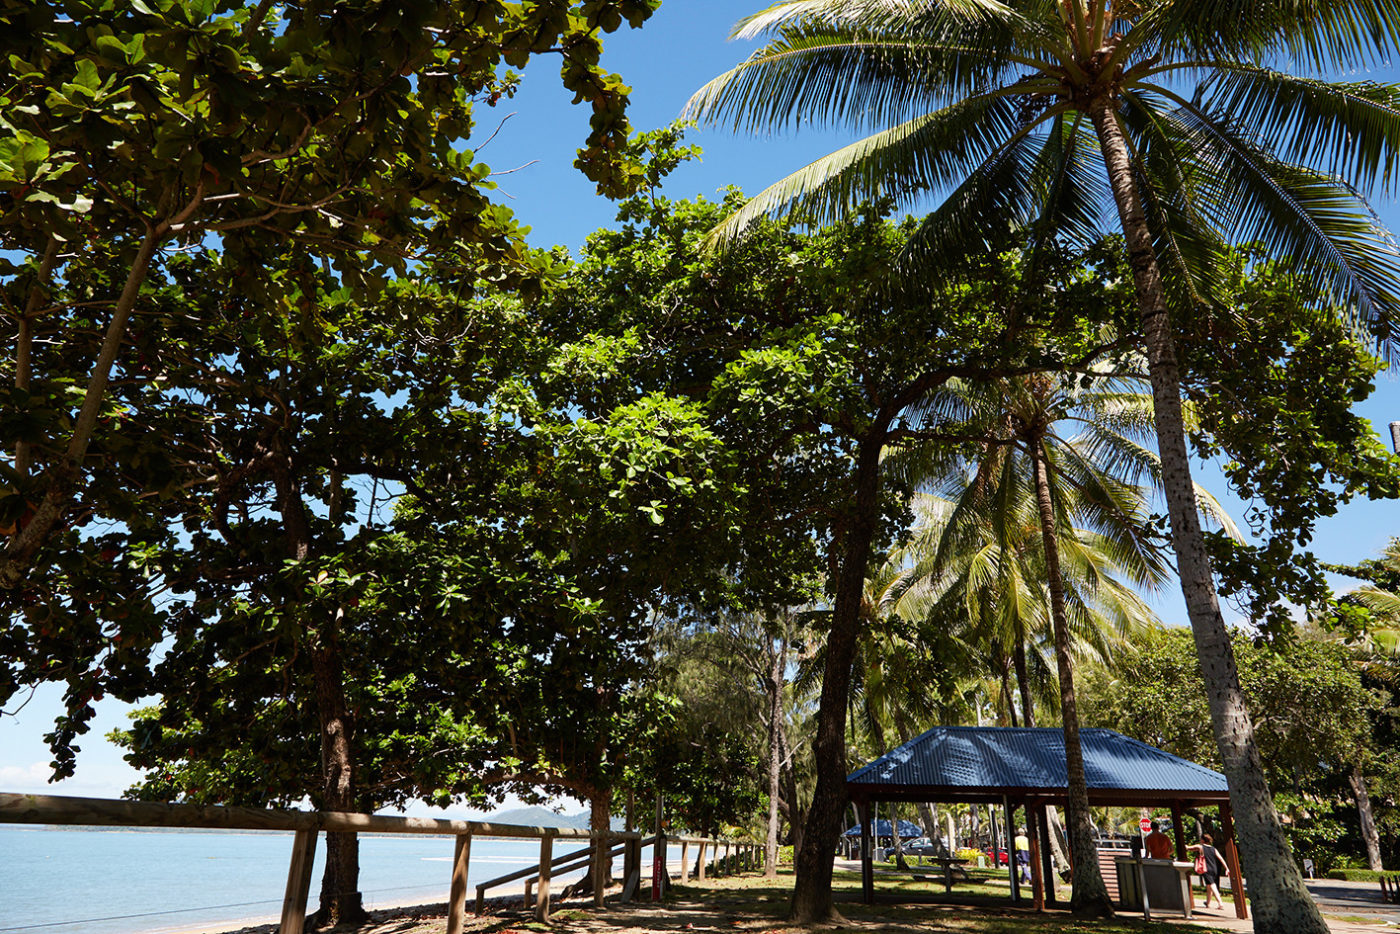 Palm Cove, Cairns, Australien, Roadtrip, Miles and Shores, Reiseblog, Reiseblogger, Palmen